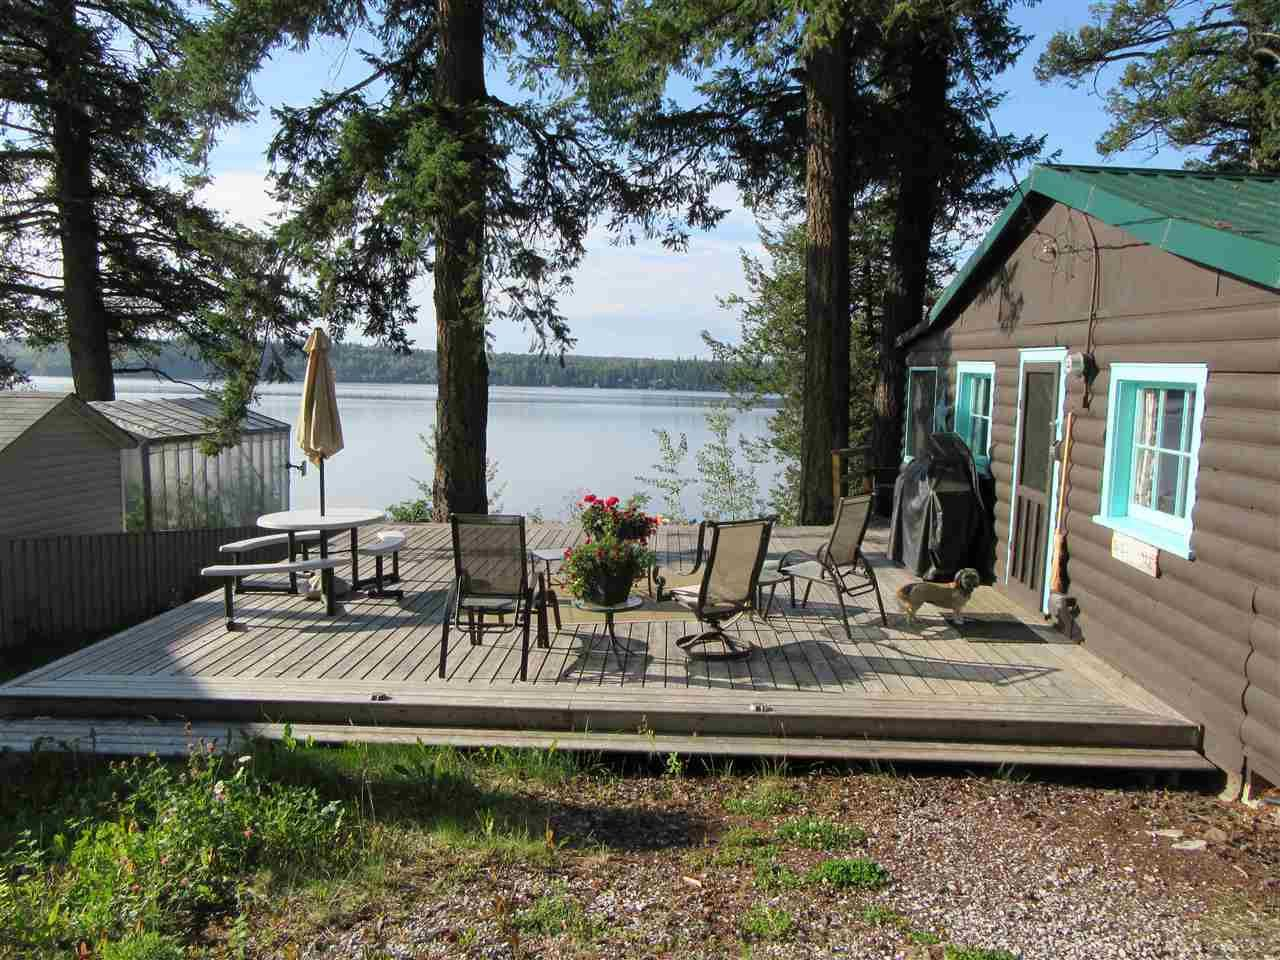 """Photo 2: Photos: 50965 CLUCULZ Place in Prince George: Cluculz Lake House for sale in """"CLUCULZ LAKE"""" (PG Rural West (Zone 77))  : MLS®# R2395157"""